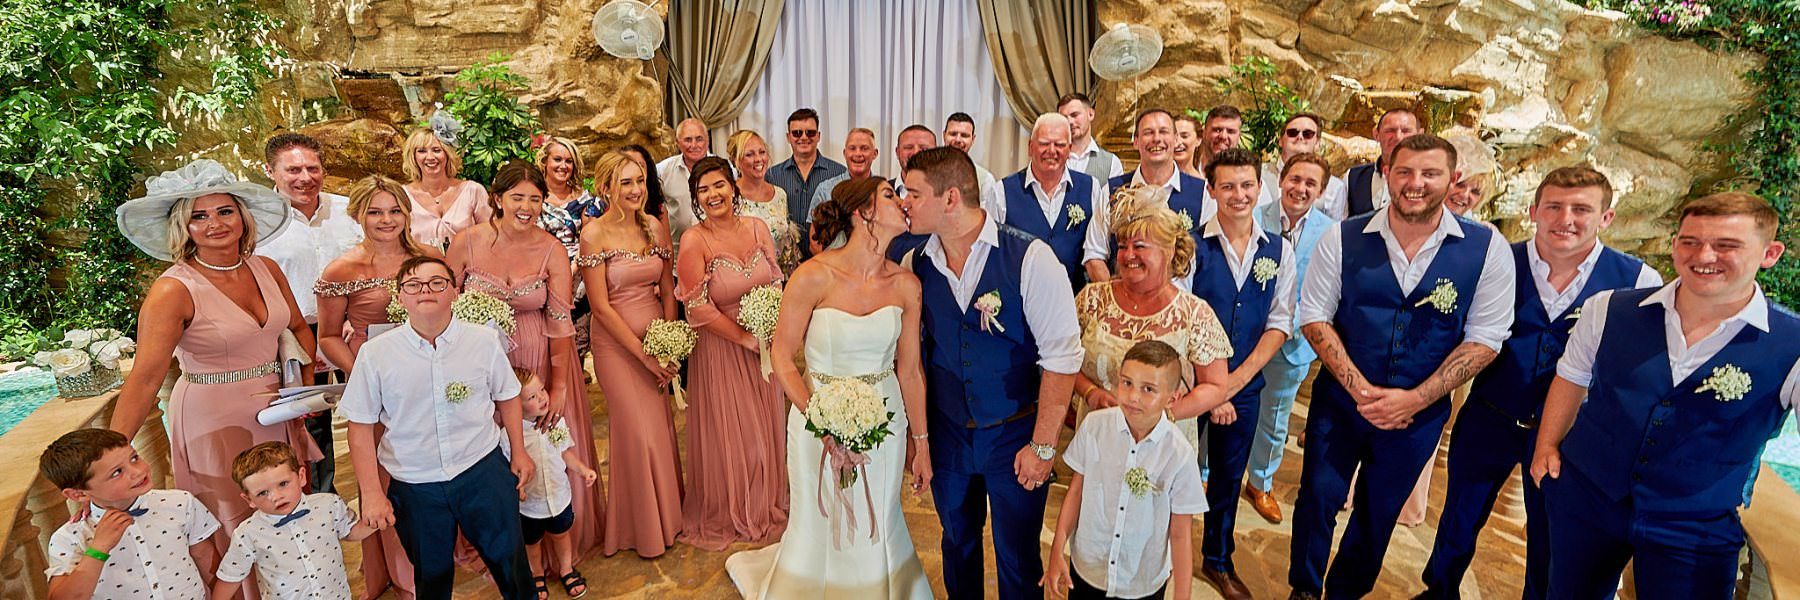 Photograph from the wedding of Shauna and Bradley at the Olympic Lagoon Resort in Ayia Napa